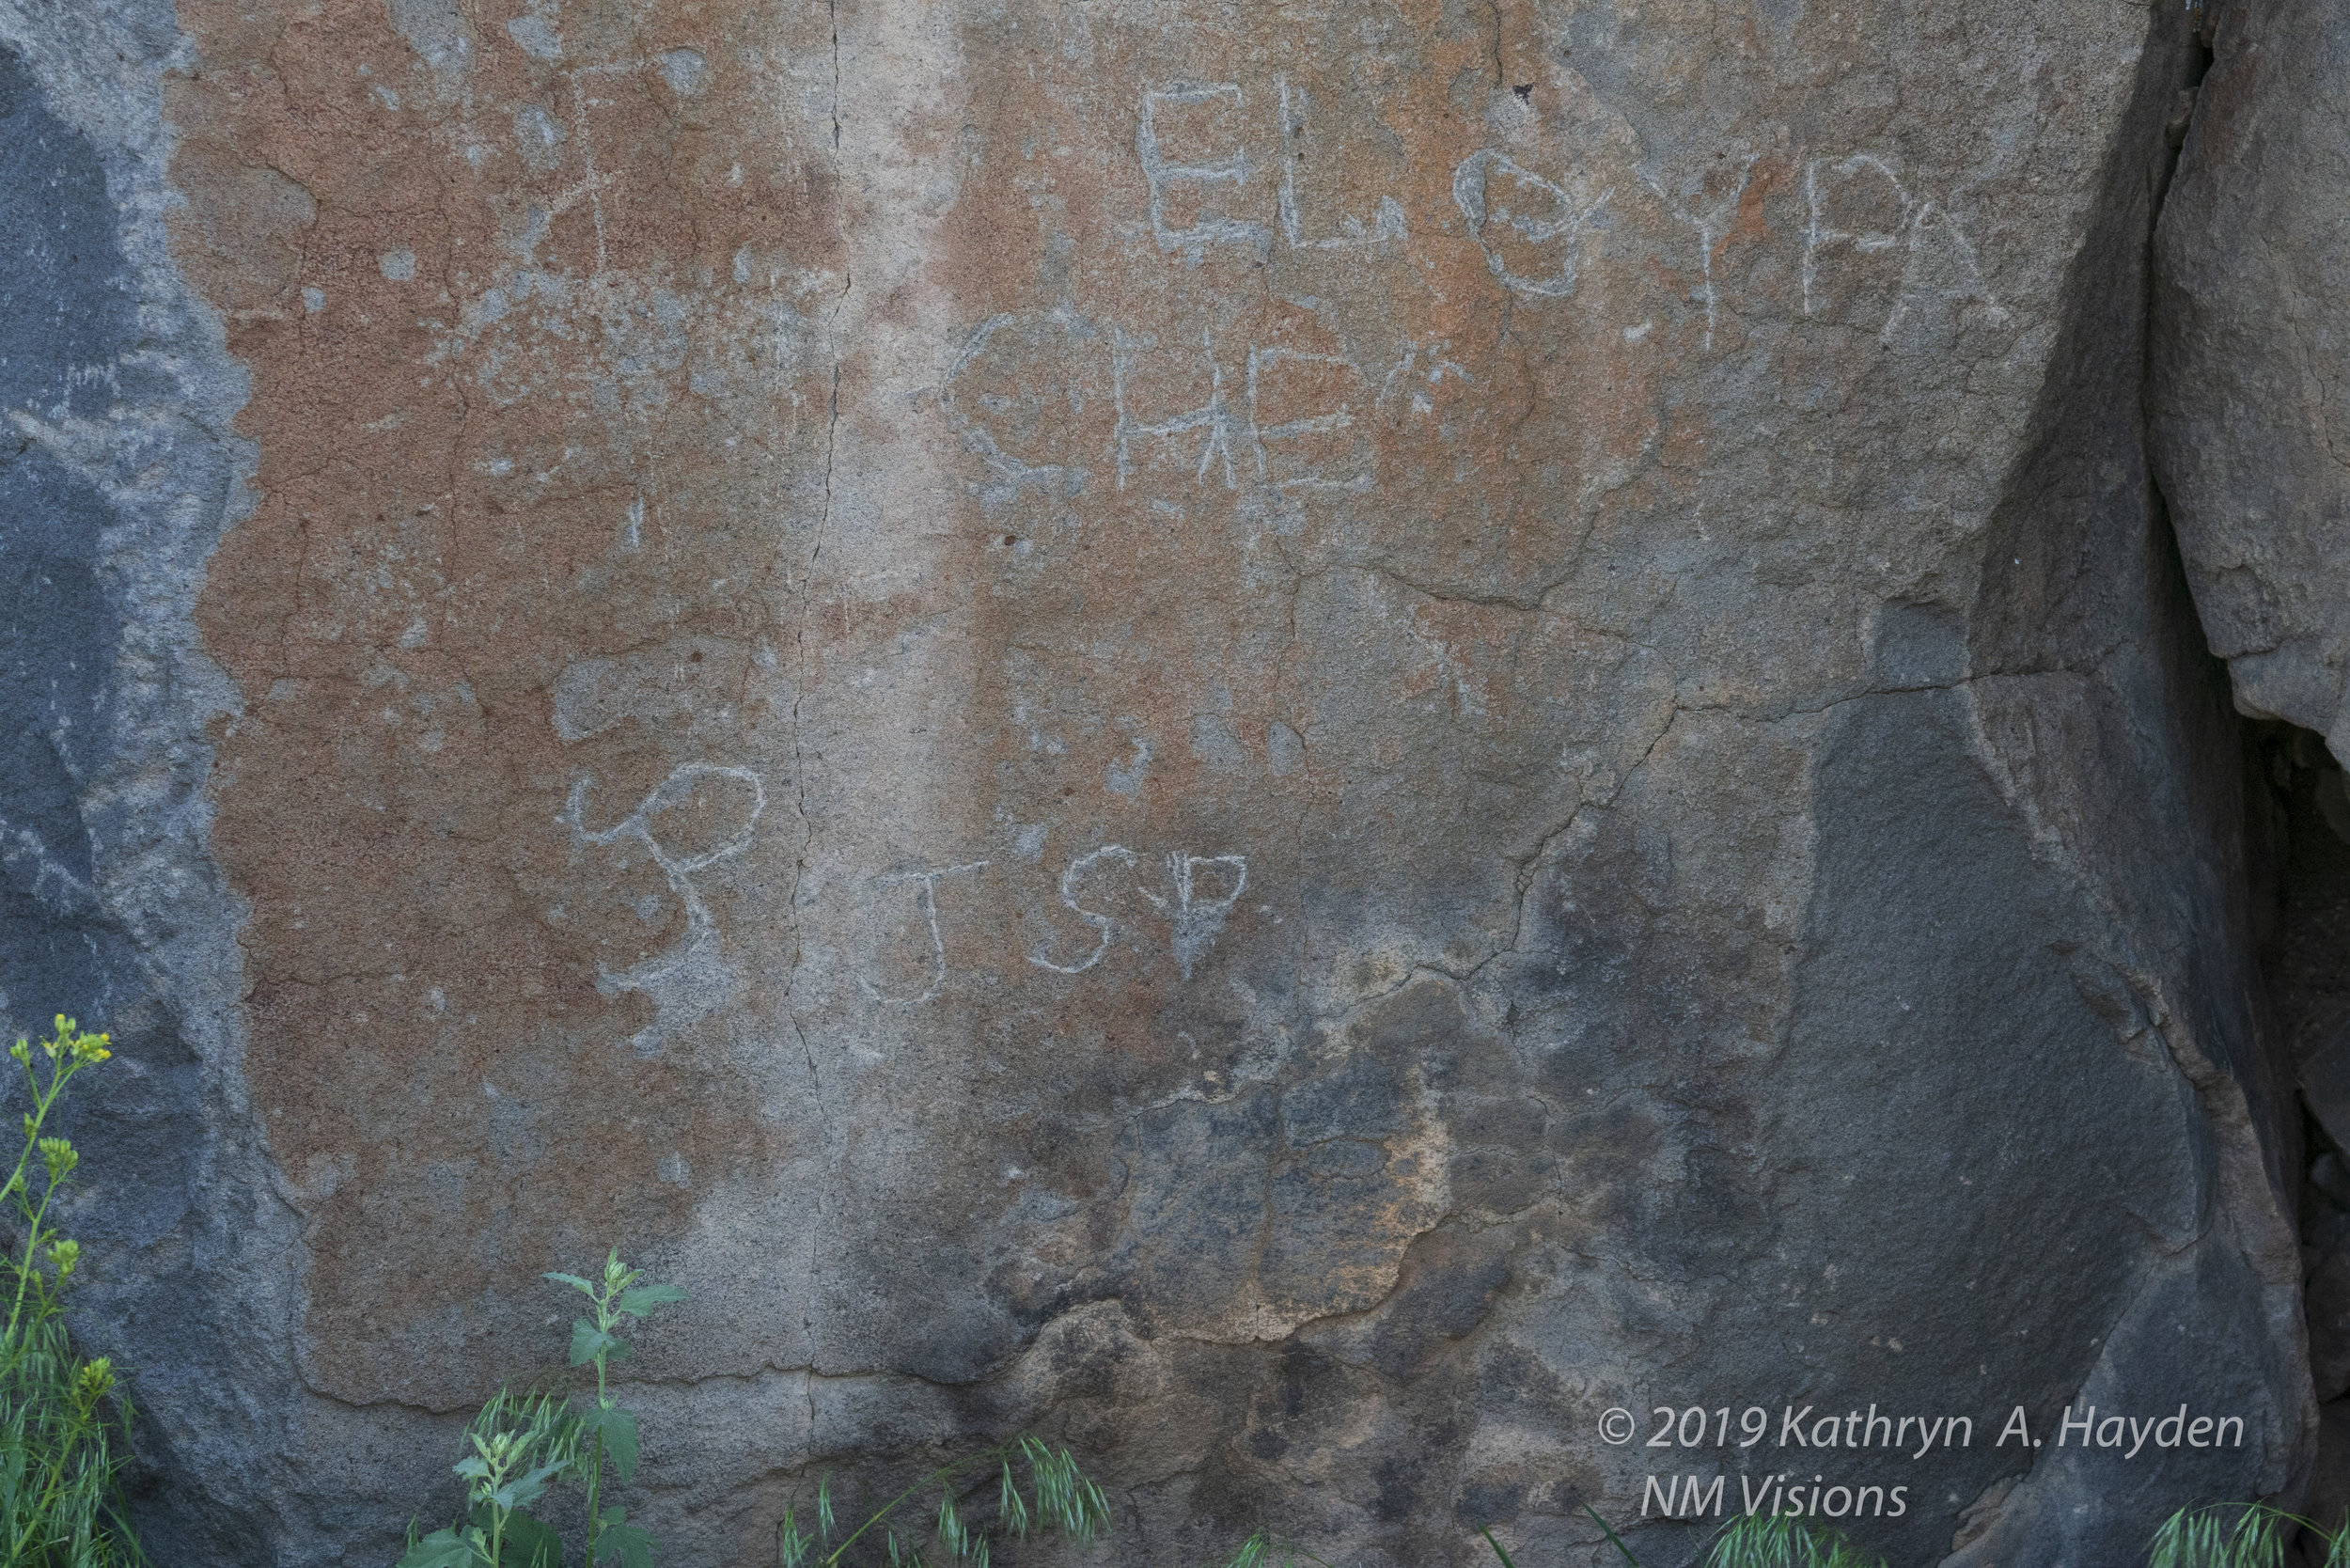 Robert explained that the markings on the rocks were often a combination of petroglyphs that were followed by shepherds that worked in the area.